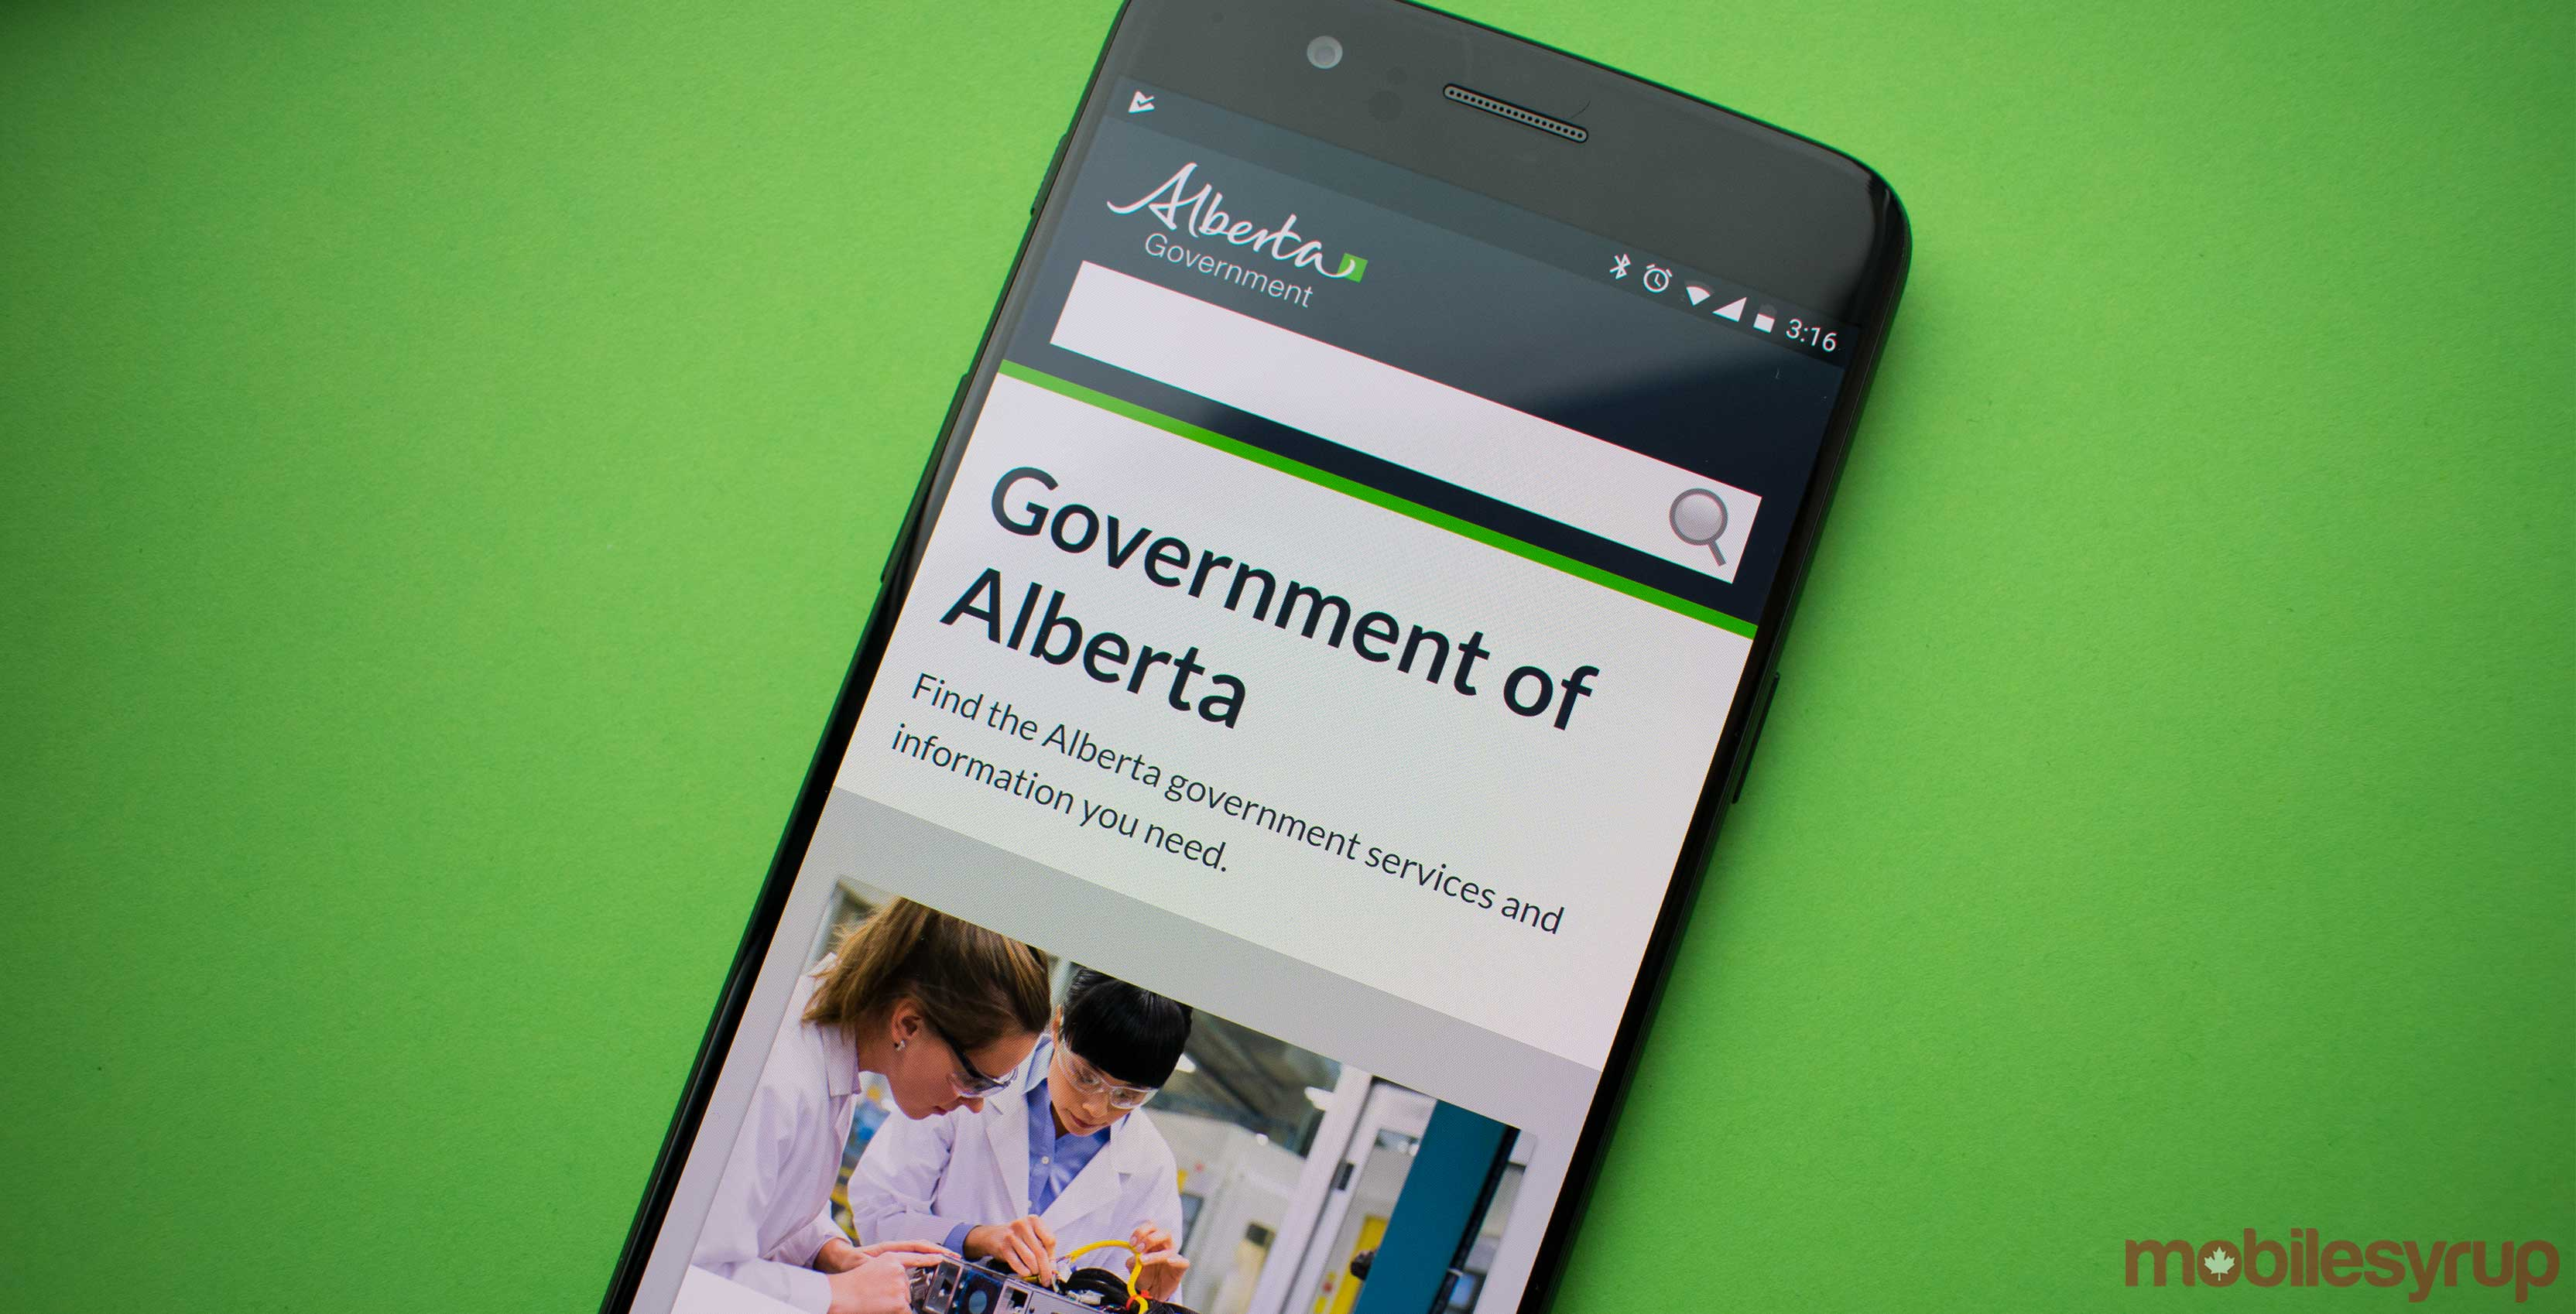 Government of Alberta website